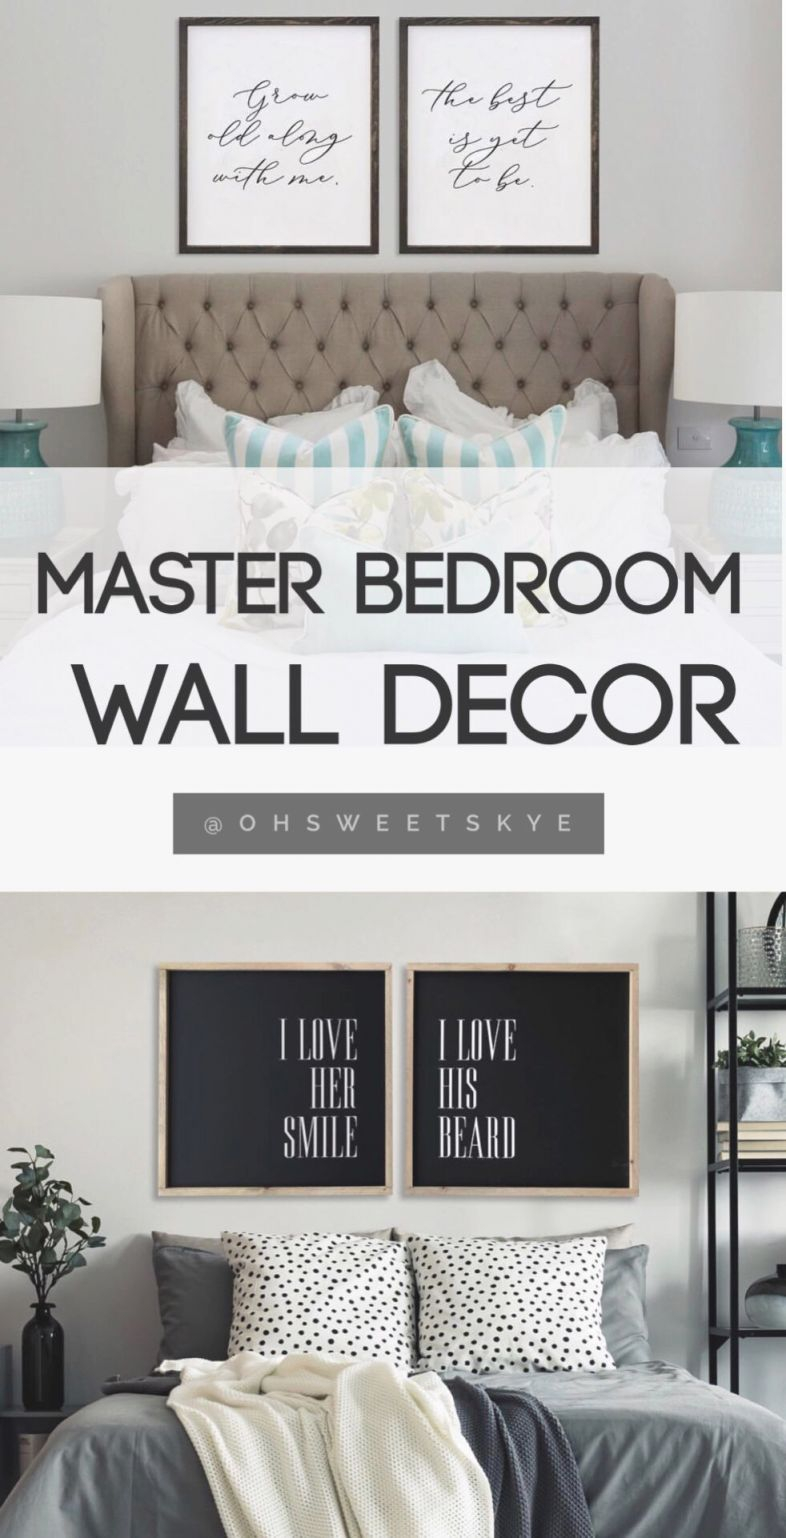 Bedroom Ideas : Master Wall Decor Decoration Decorating For in